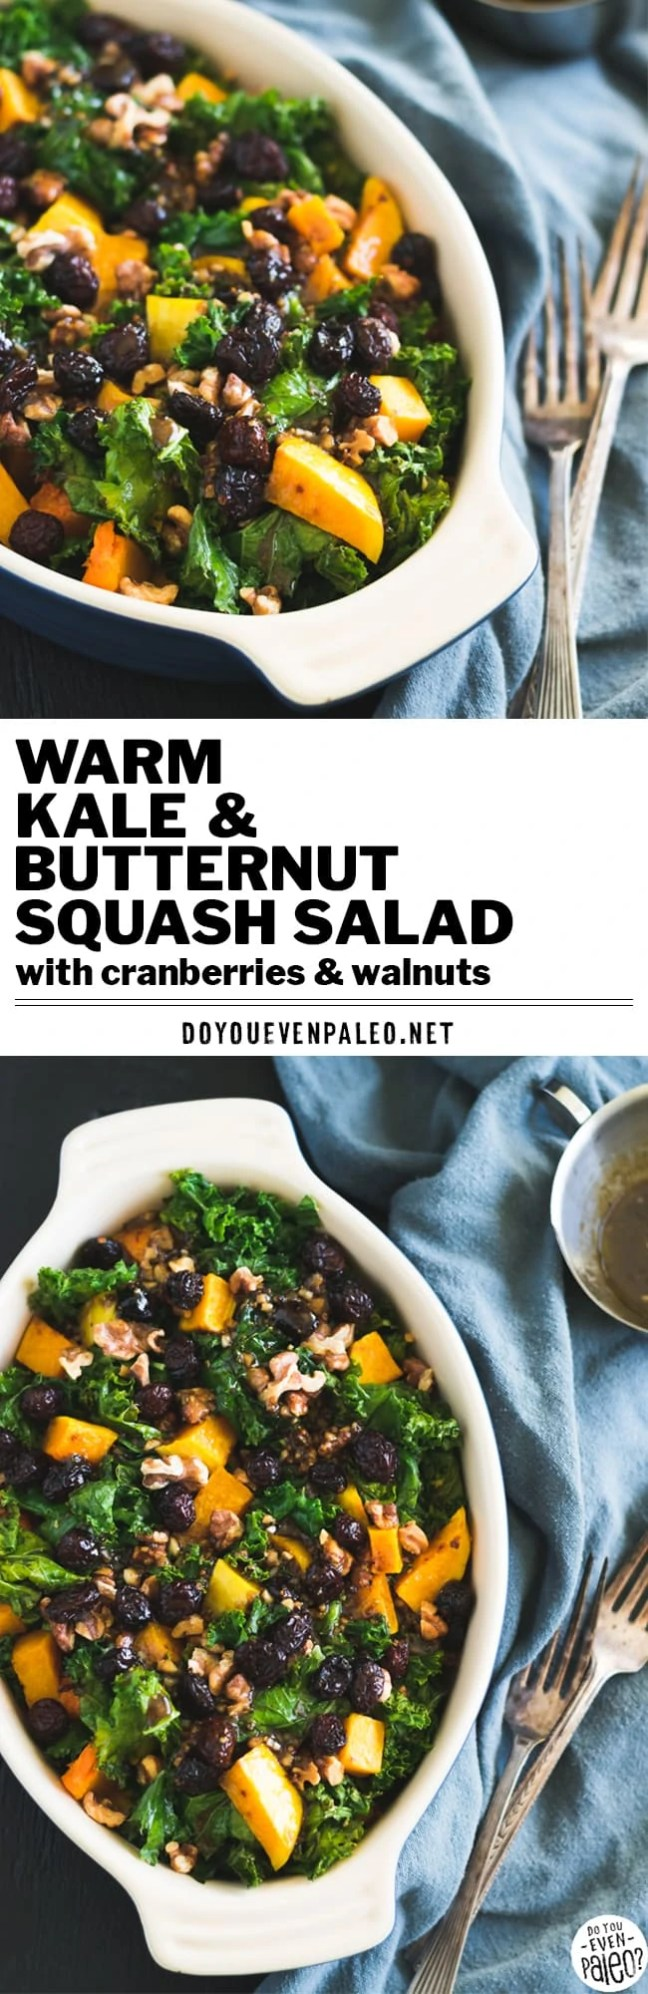 This simple warm kale & butternut squash salad will not disappoint! Packed with fall flavors, it makes a nourishing and colorful side dish.   DoYouEvenPaleo.net #paleo #glutenfree #salad #kale